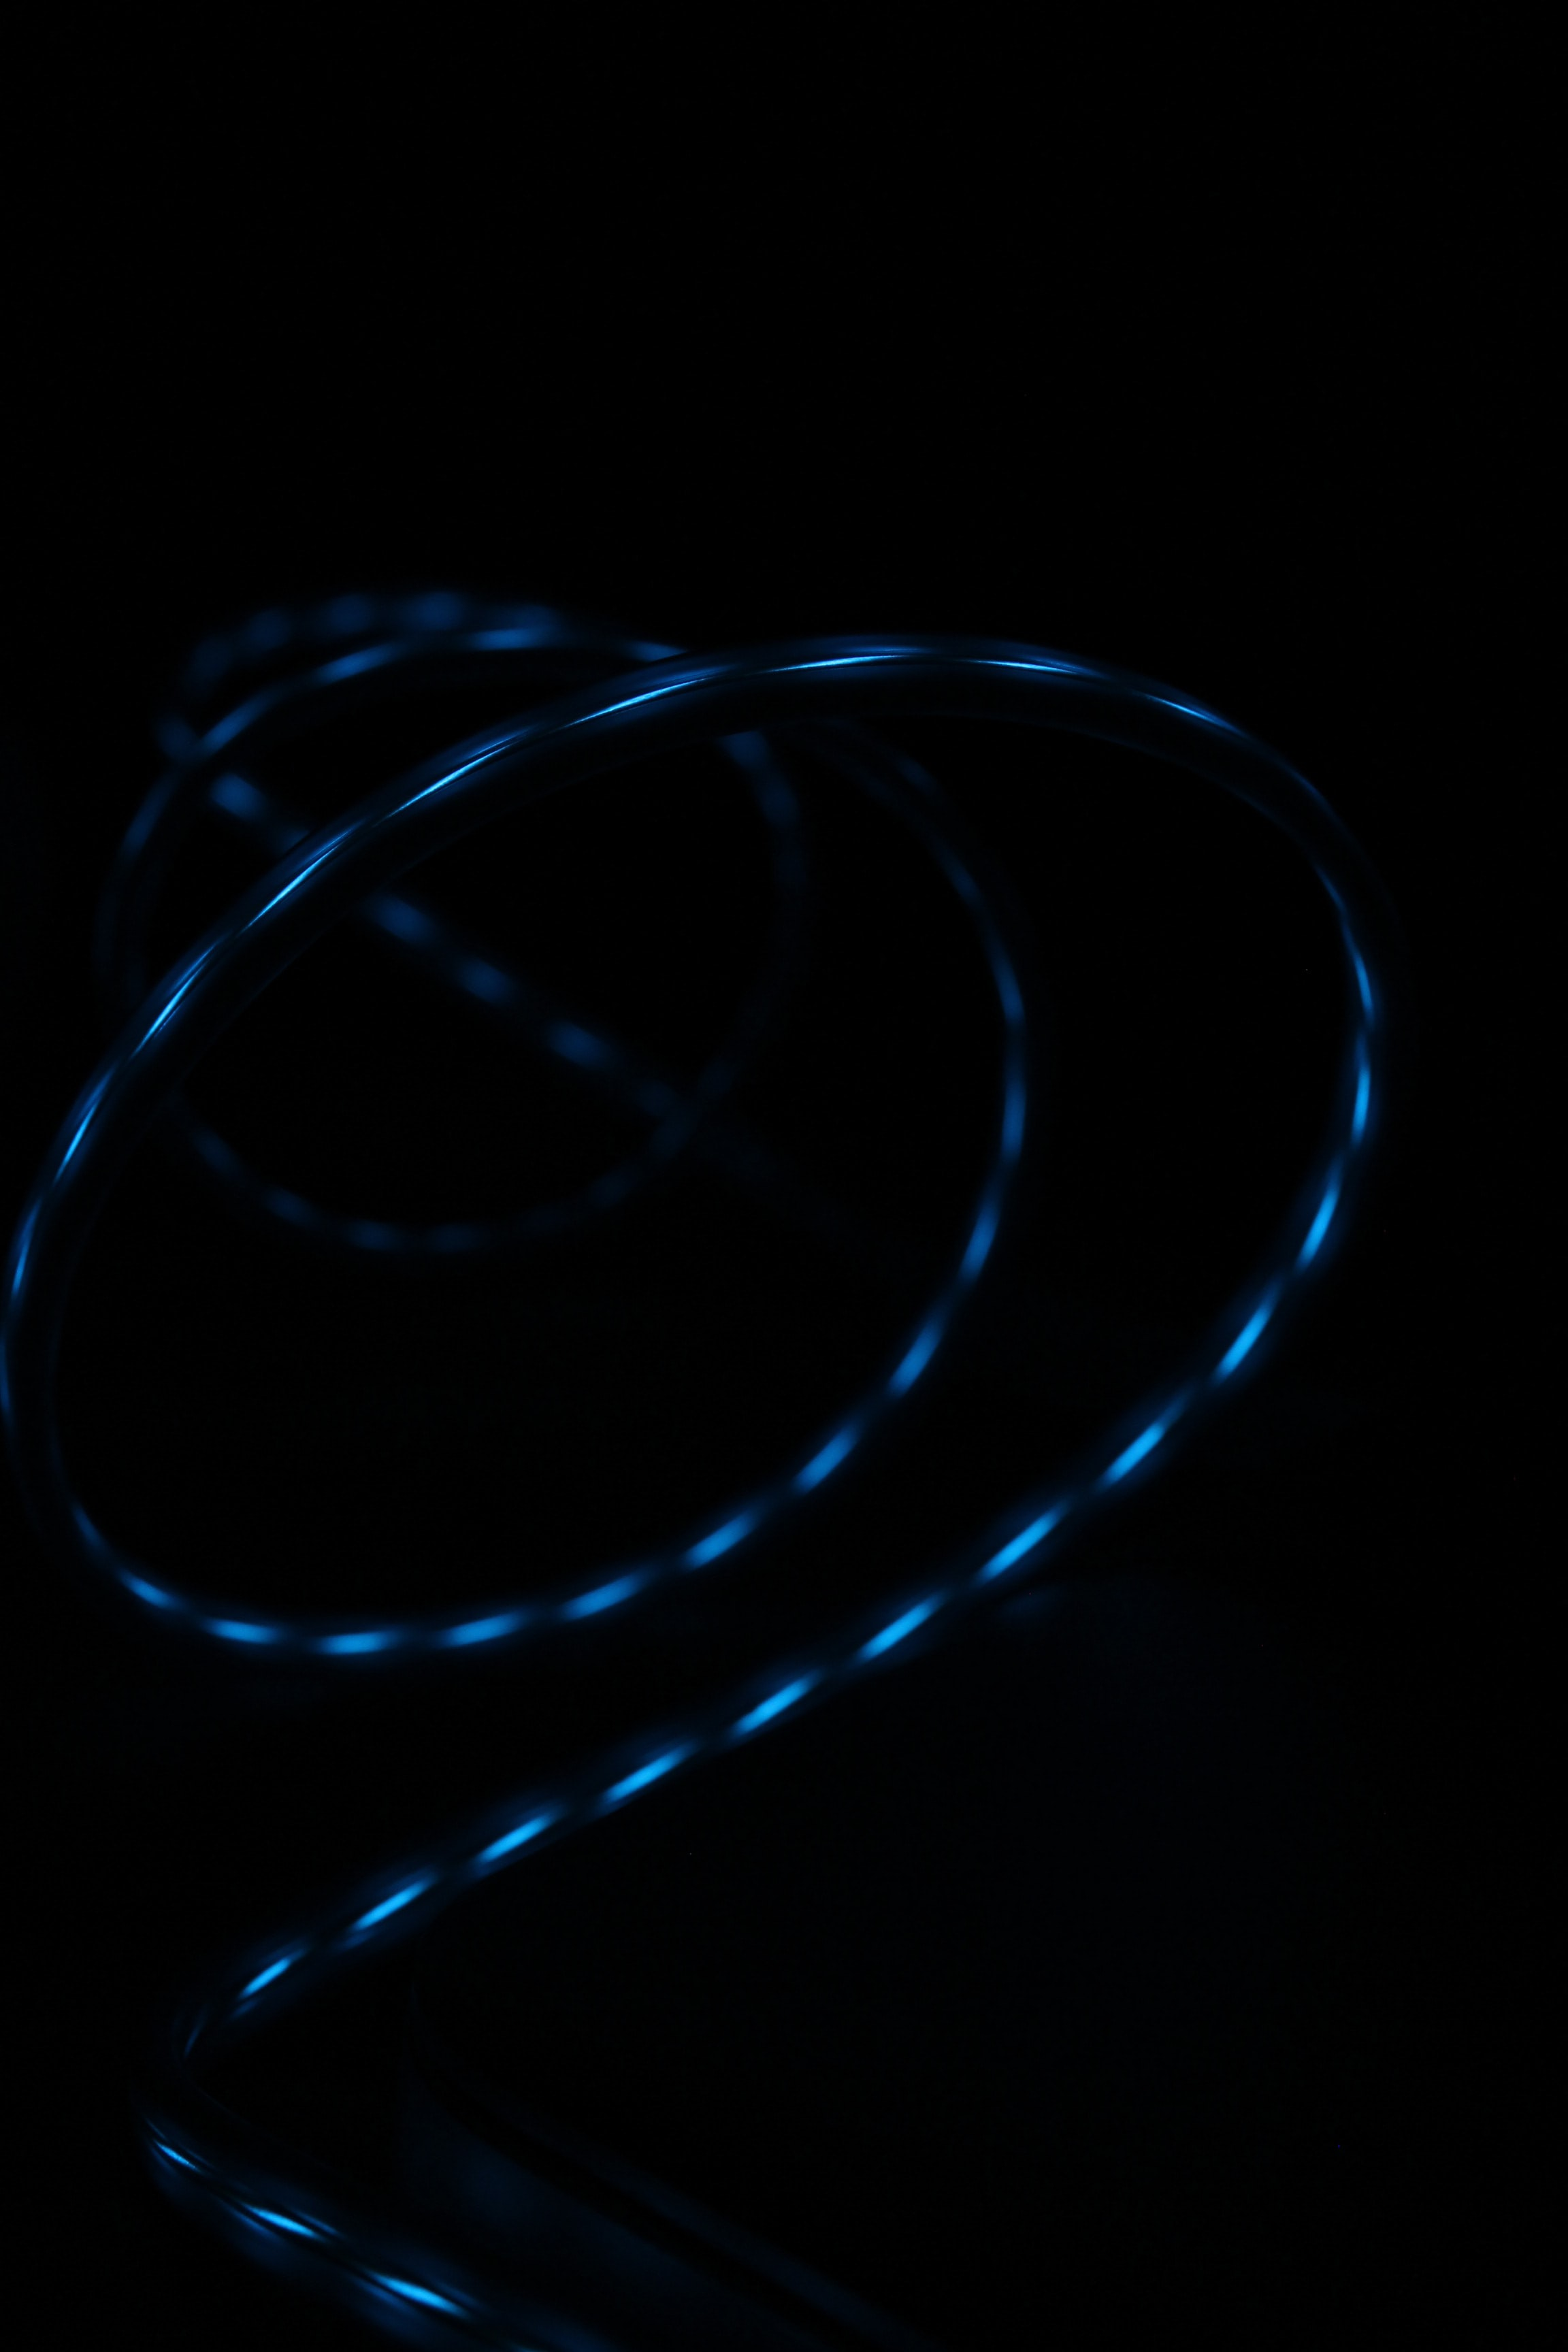 Blue light reflected in the glossy surface of a swirling wire